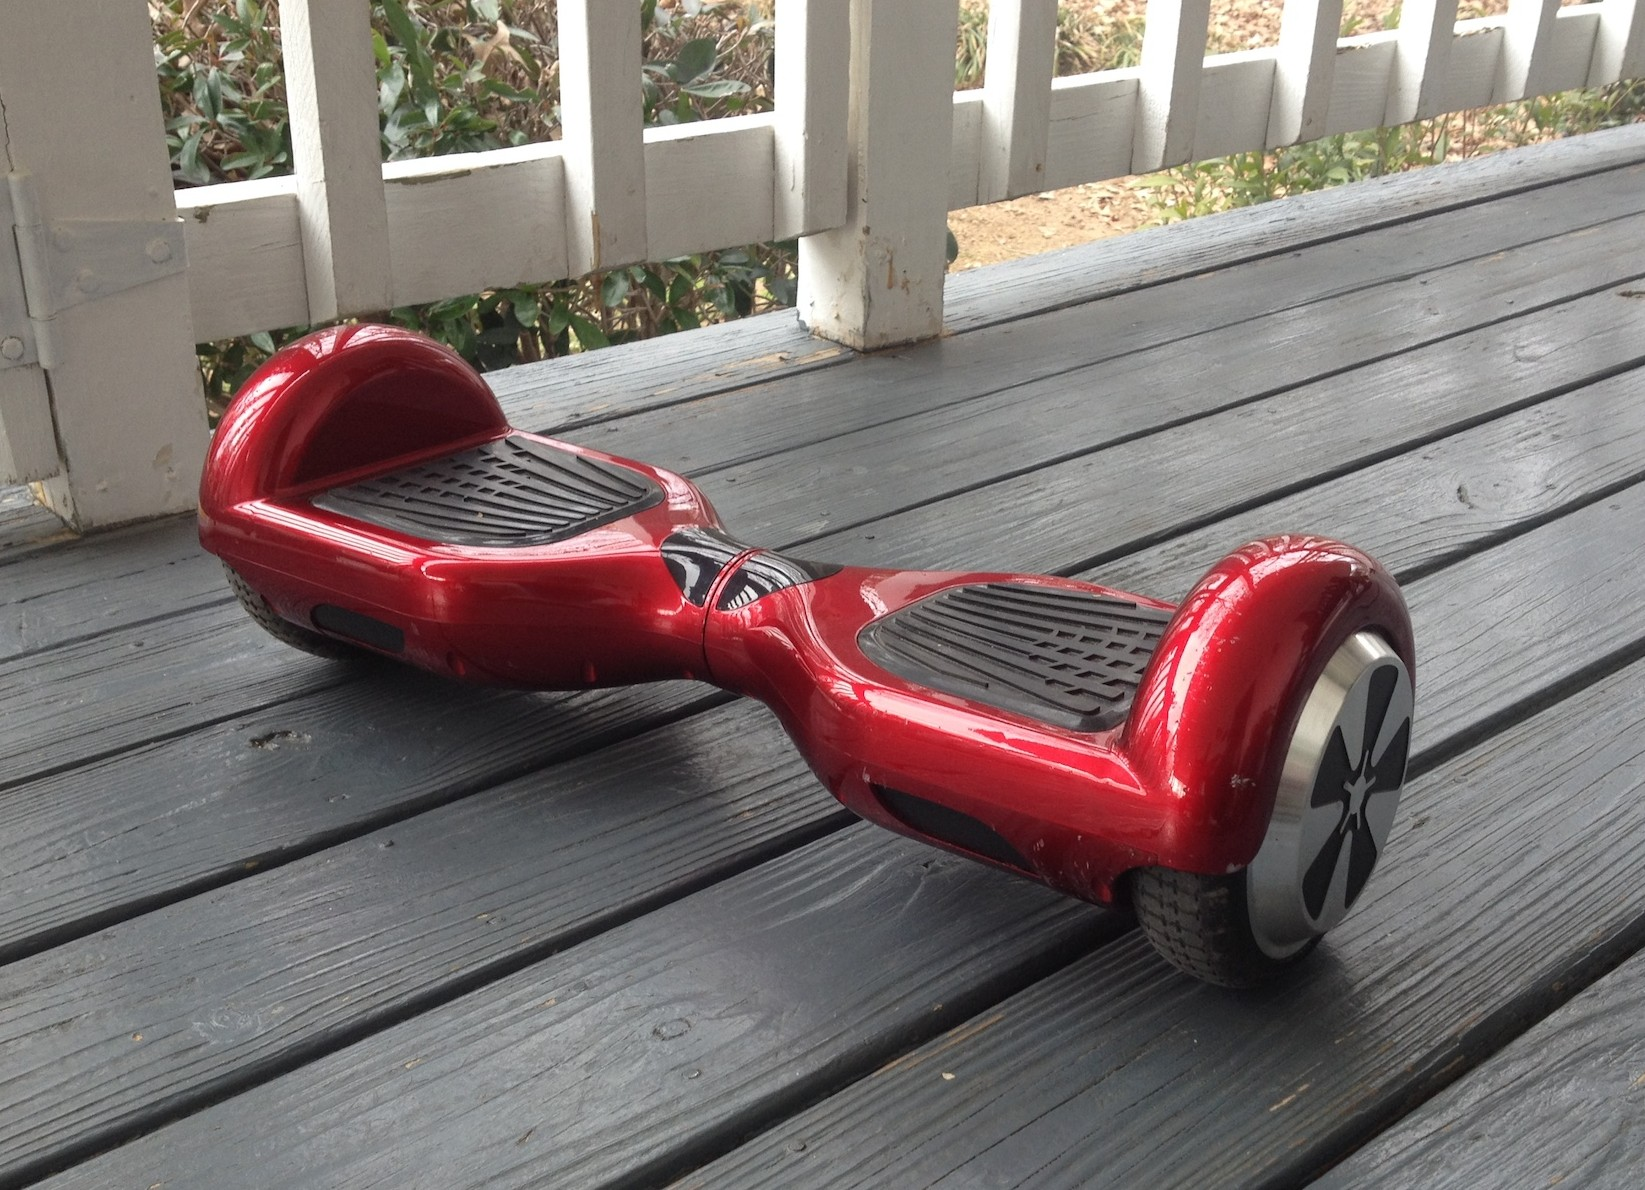 University bans hoverboards on campus